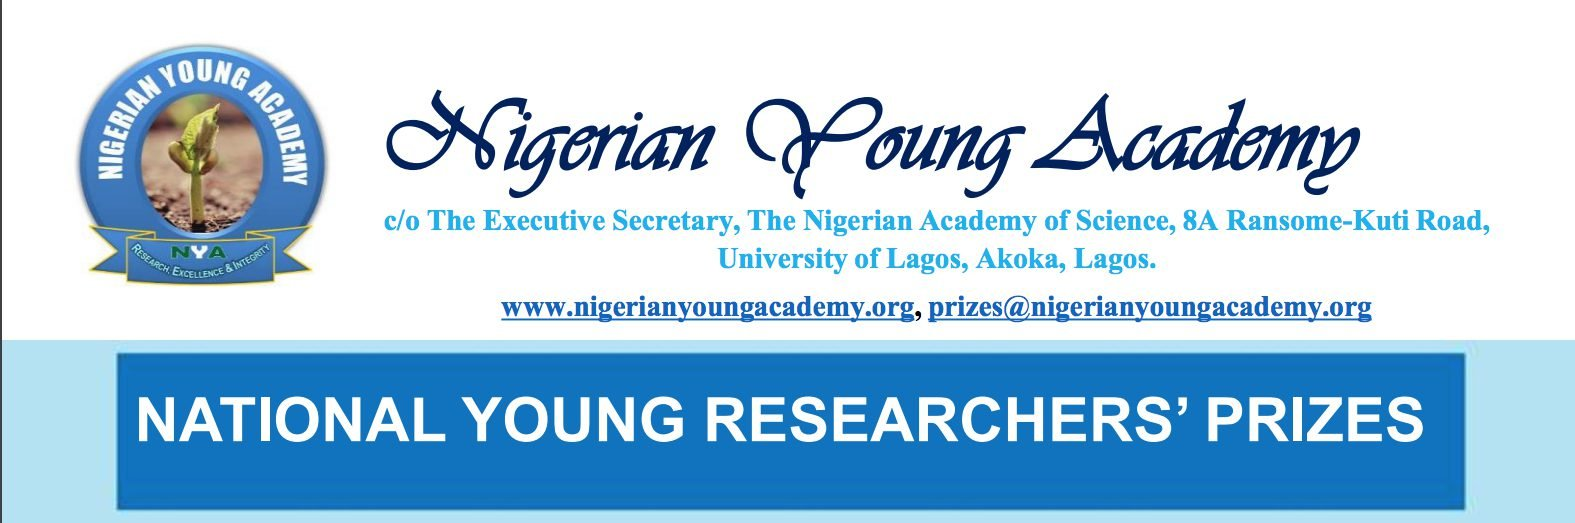 Nigerian Young Academy (NYA) National Young Researcher's Prizes